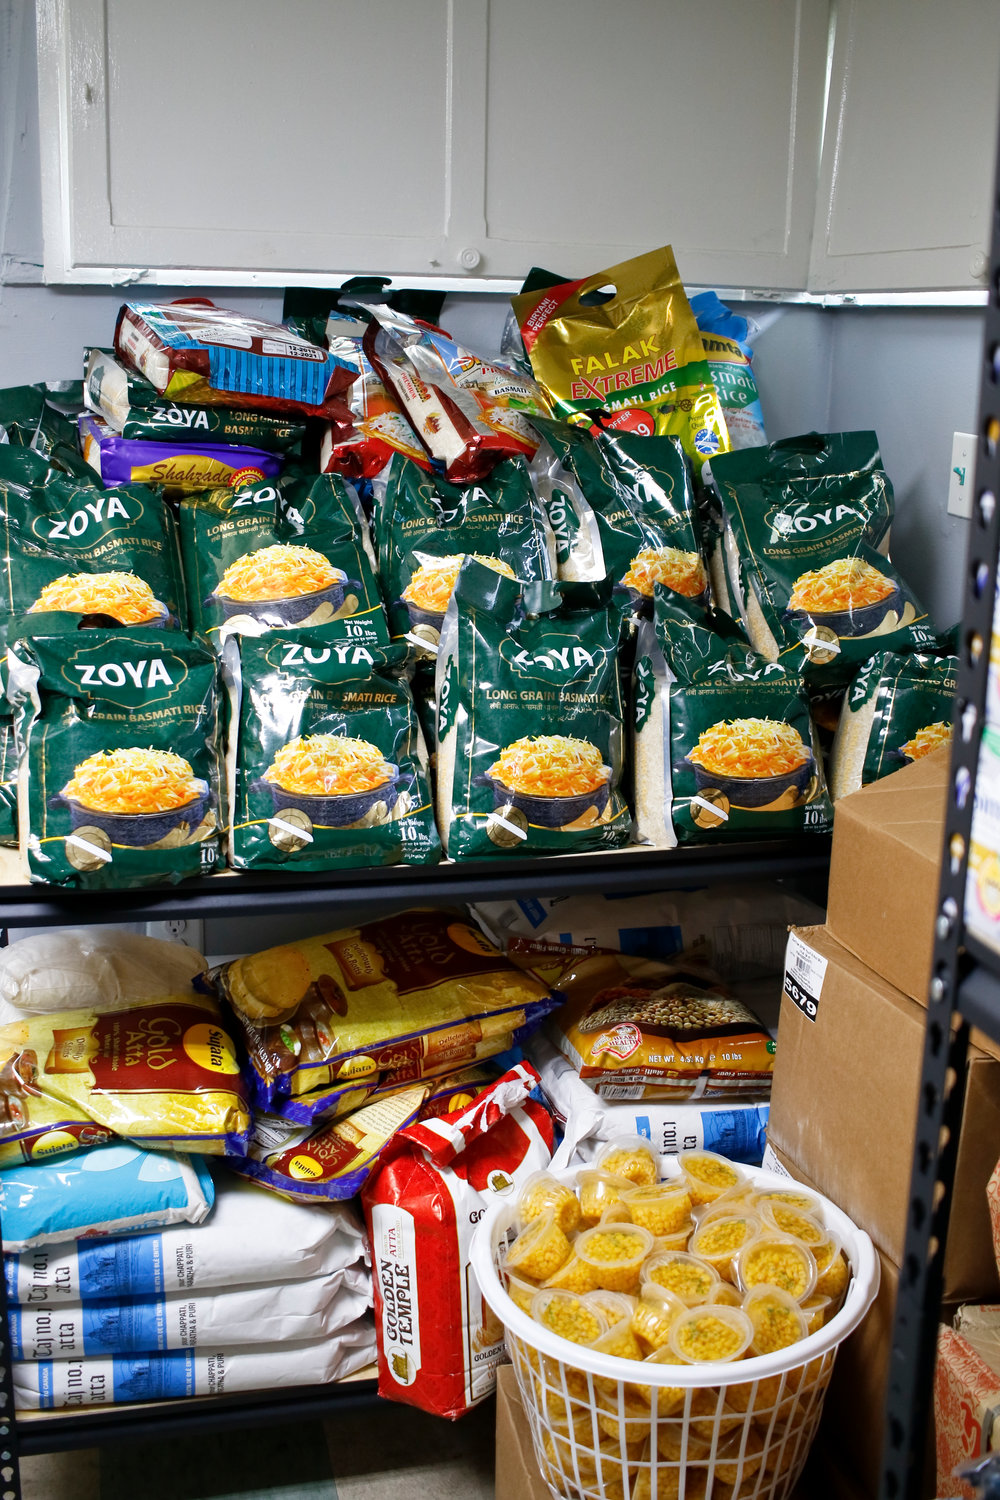 The food pantry at Masjid Hamza opened on Aug. 31 and has so far helped feed nearly 400 families in need.